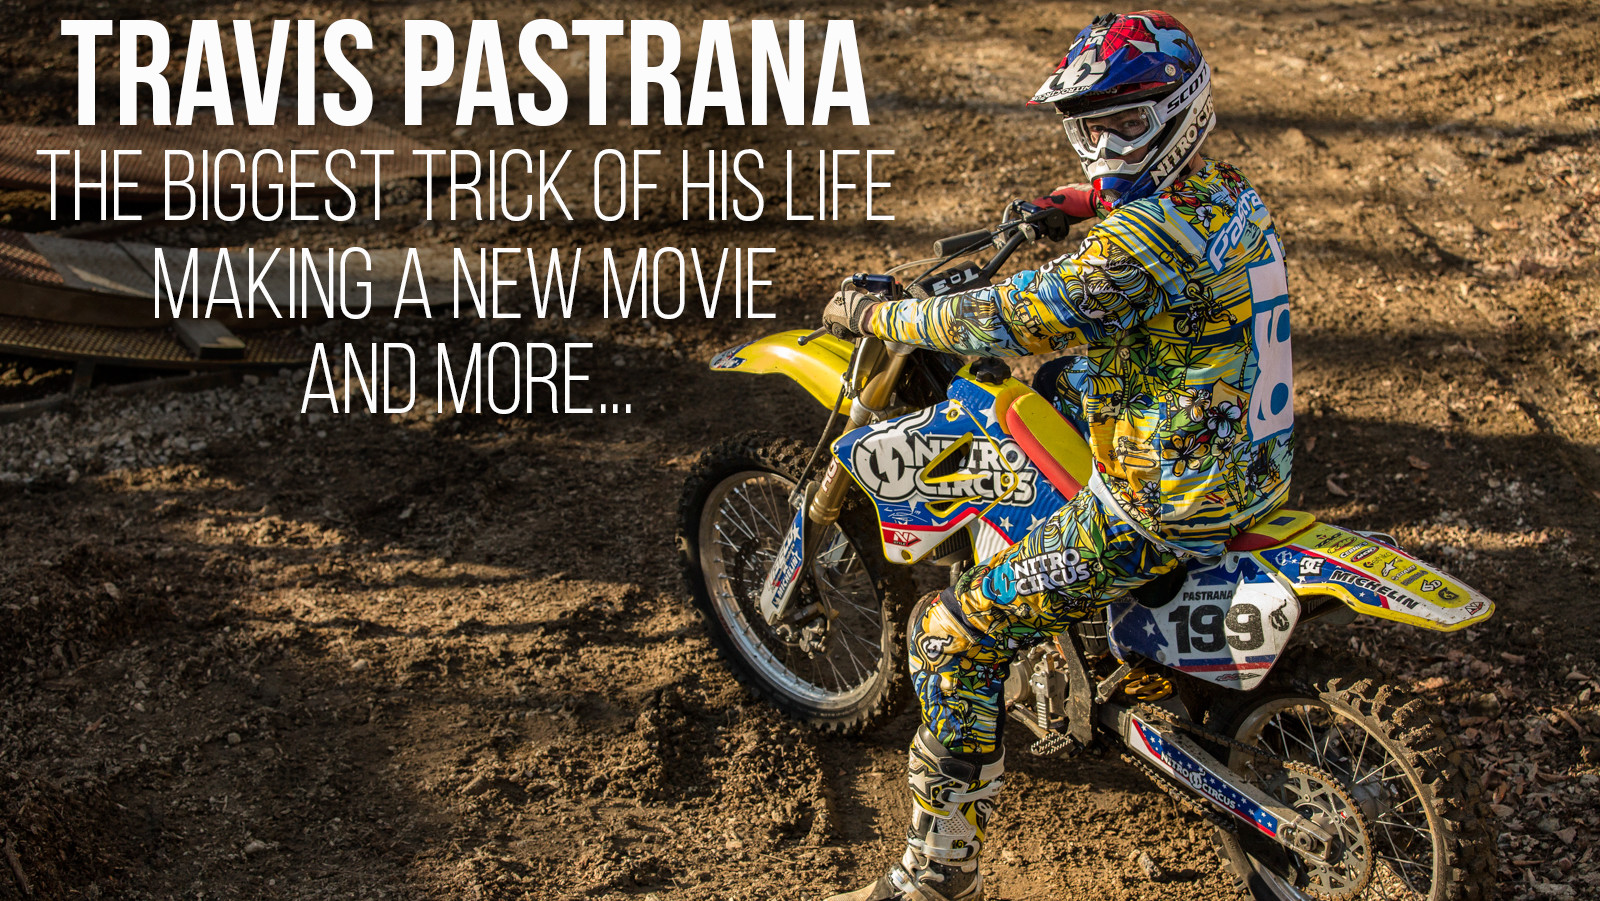 Travis Pastrana on the Biggest Trick of His Life, the Latest Movie, and More...